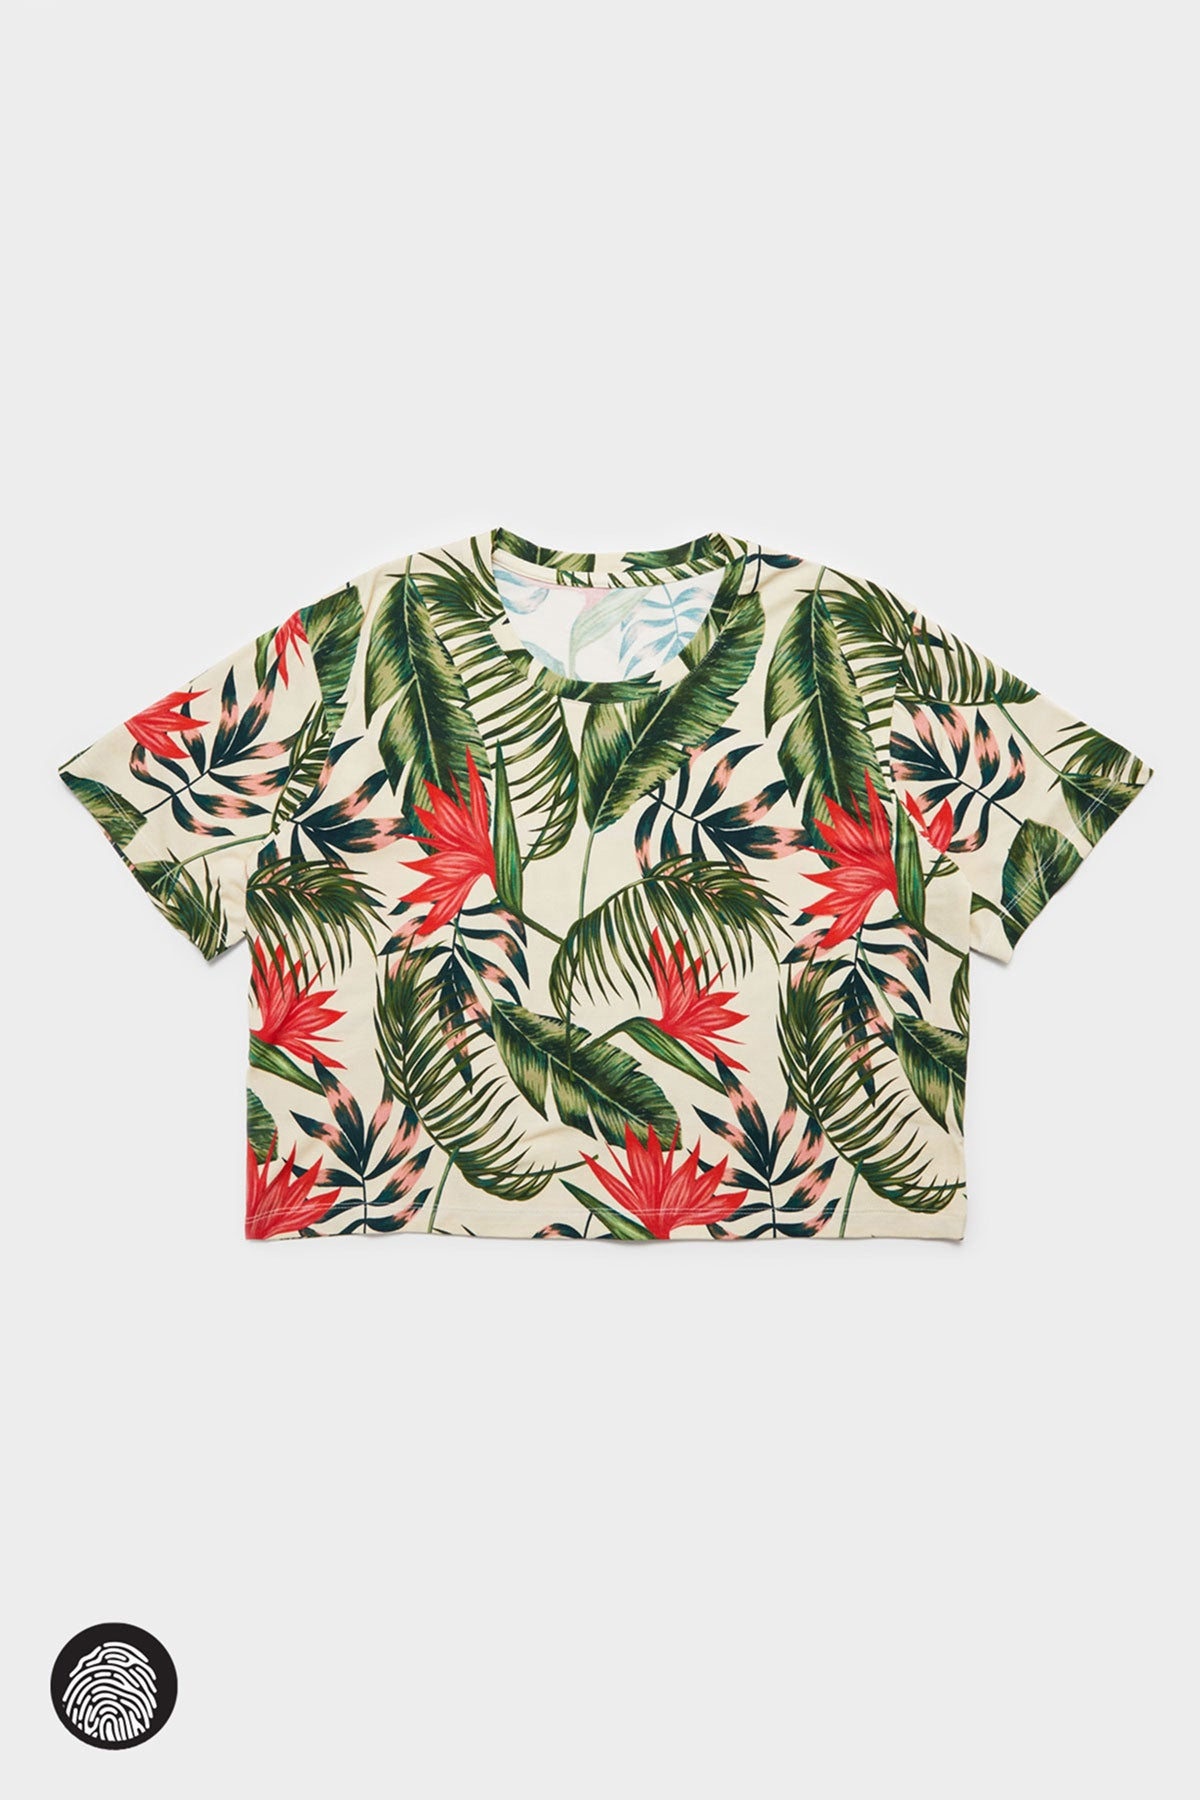 LEILANI CROPPED T-SHIRT / WHITE BIRD OF PARADISE | JungleGurl